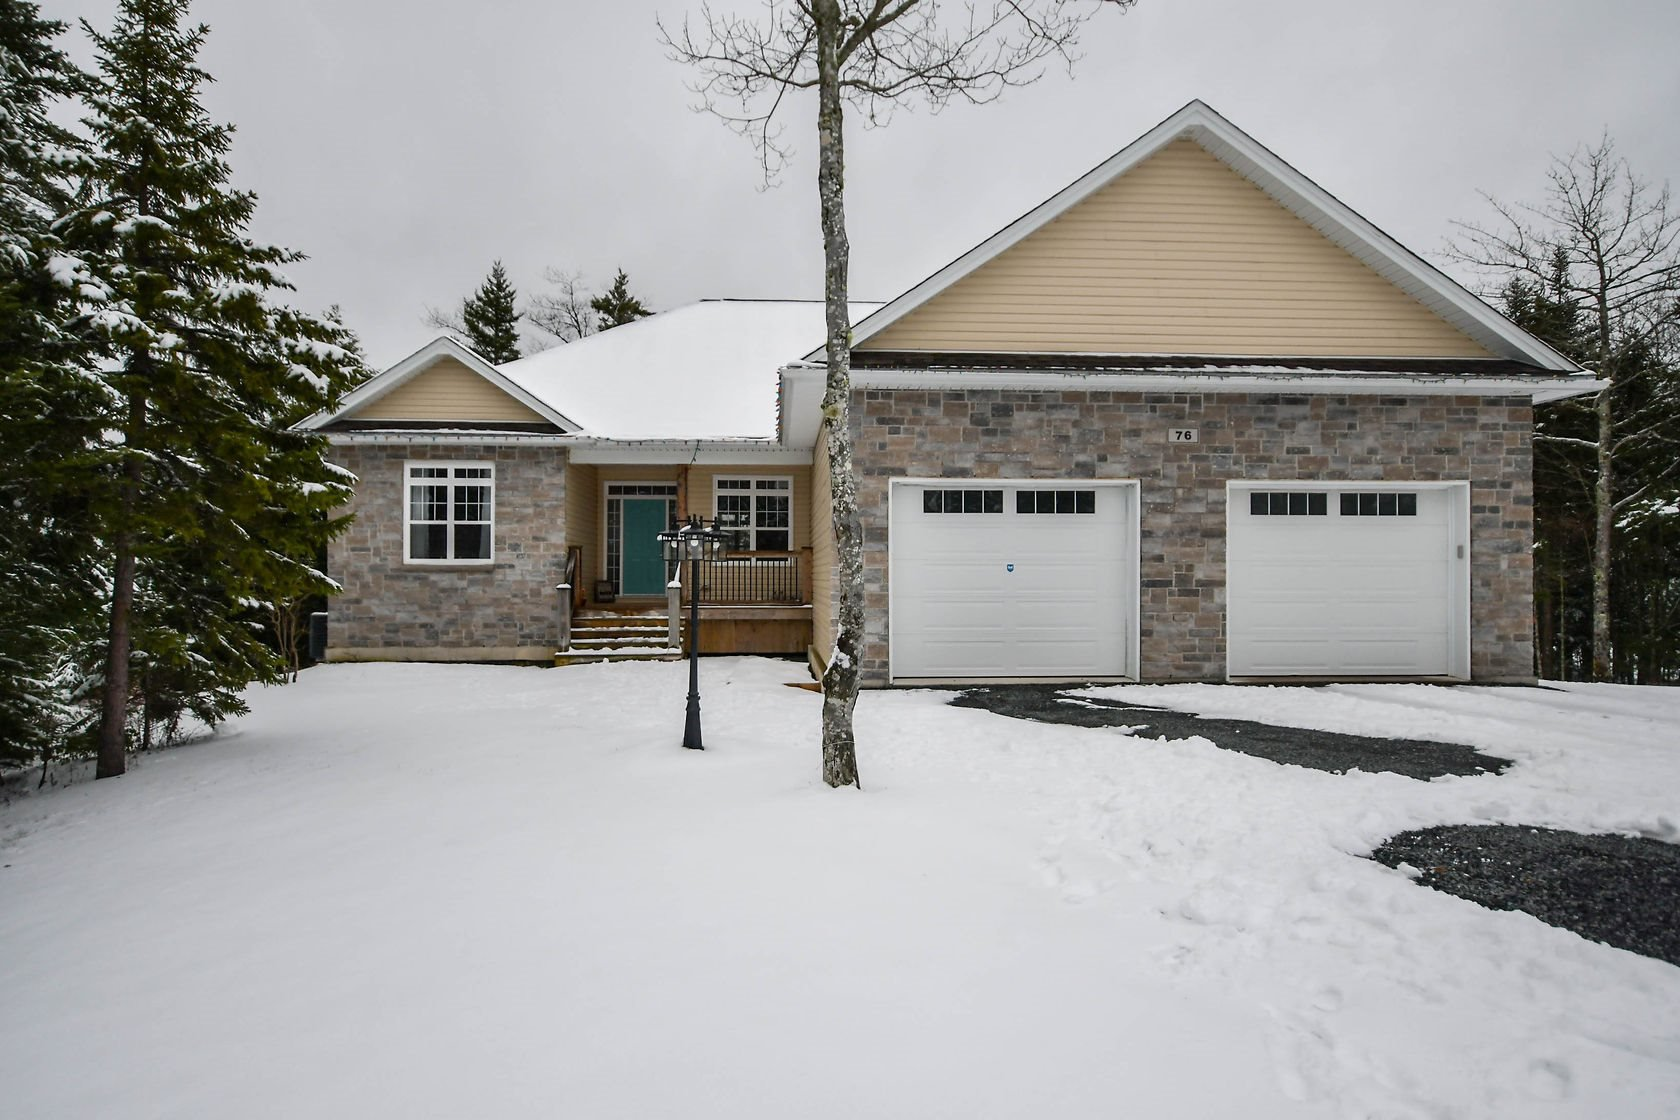 Main Photo: 76 Summerwood Lane in Hammonds Plains: 21-Kingswood, Haliburton Hills, Hammonds Pl. Residential for sale (Halifax-Dartmouth)  : MLS®# 202100335